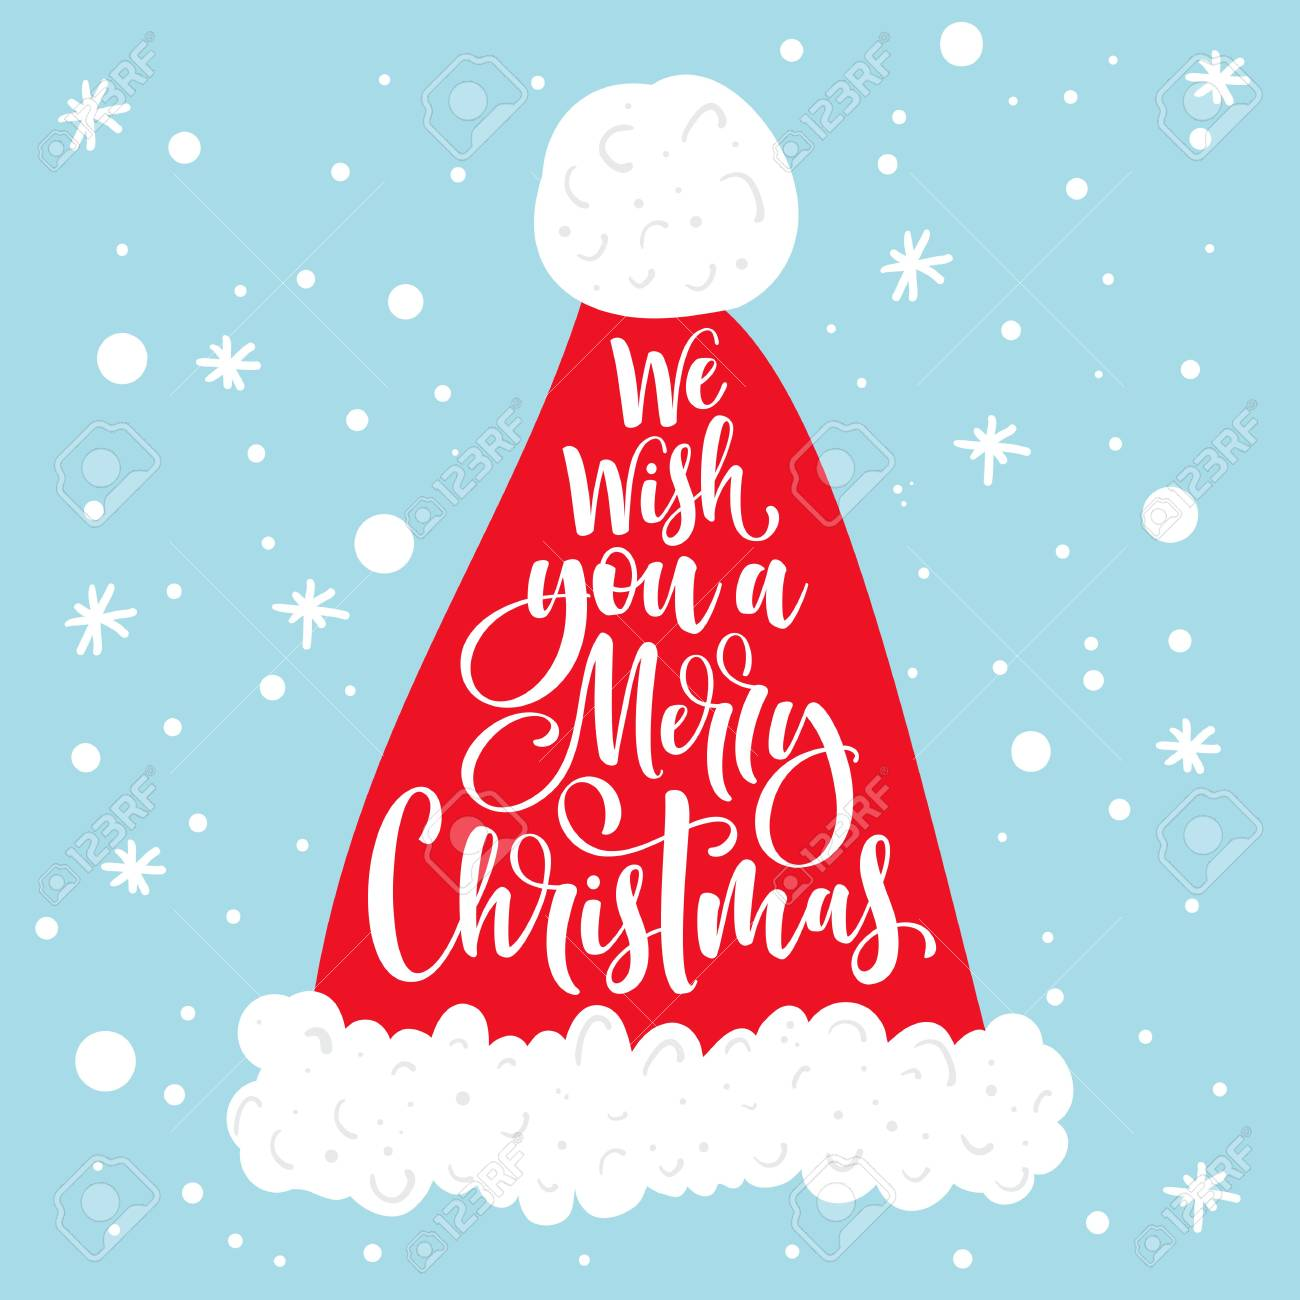 Merry Christmas Images Free.We Wish You A Merry Christmas Text Calligraphy Text For Greeting